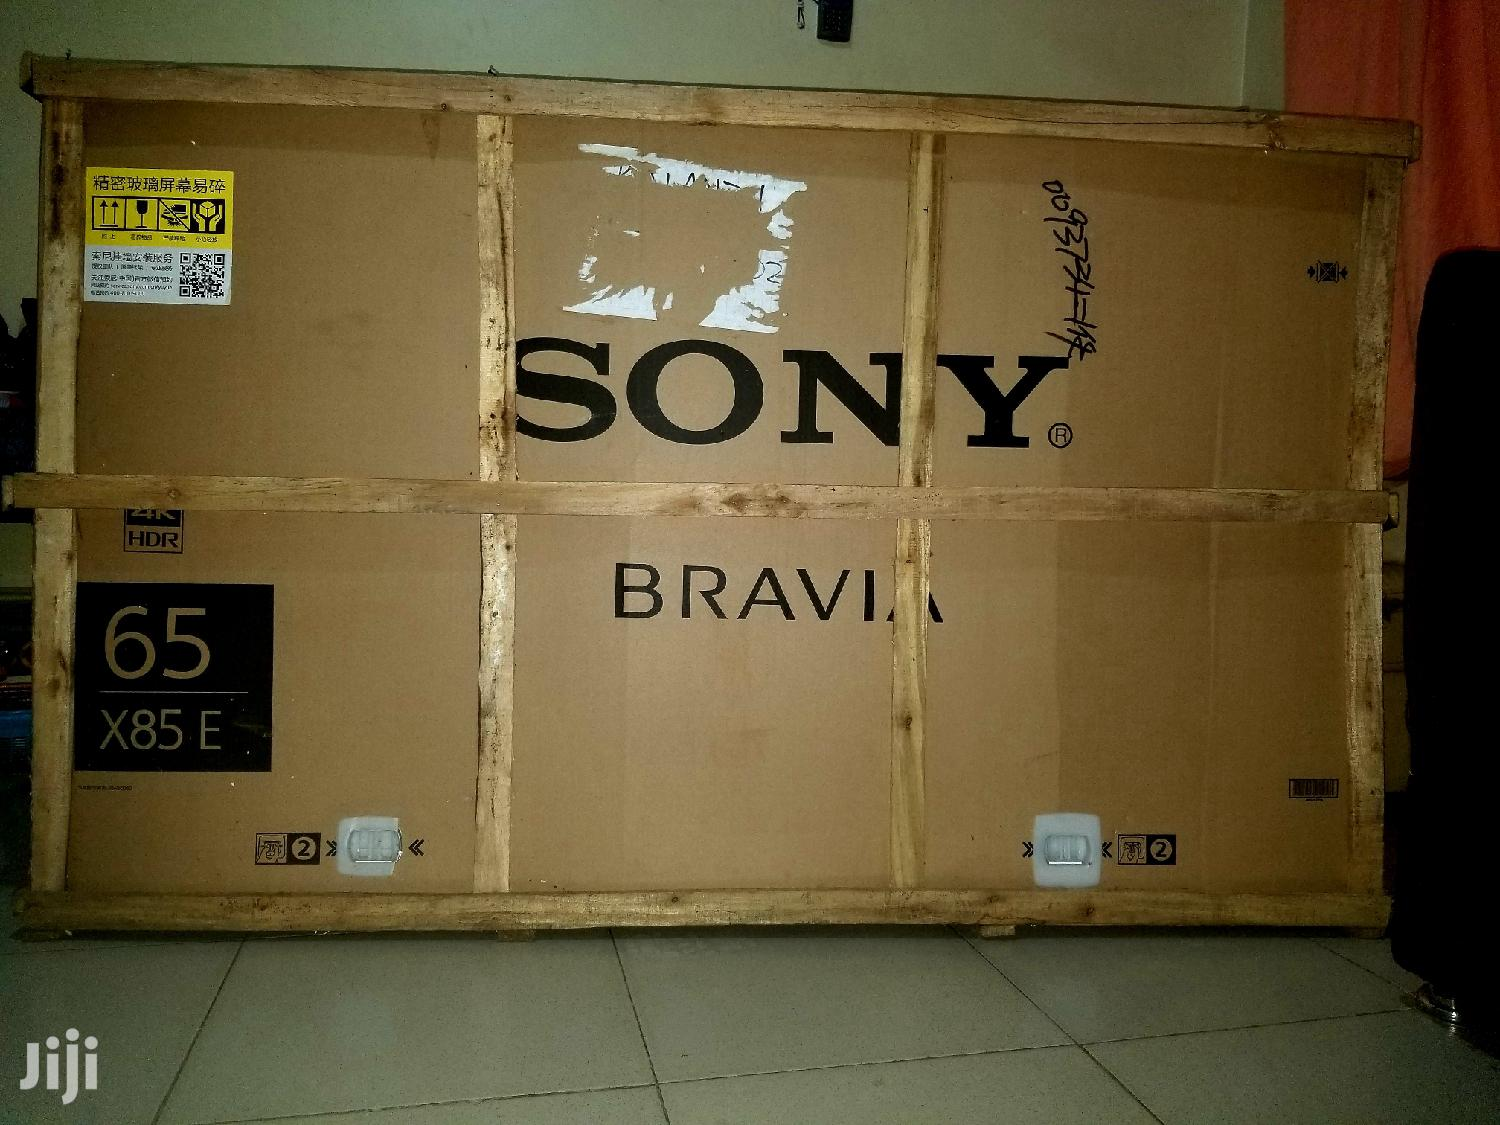 Sony Smart Uhd 4k Android Tv 65 Inches